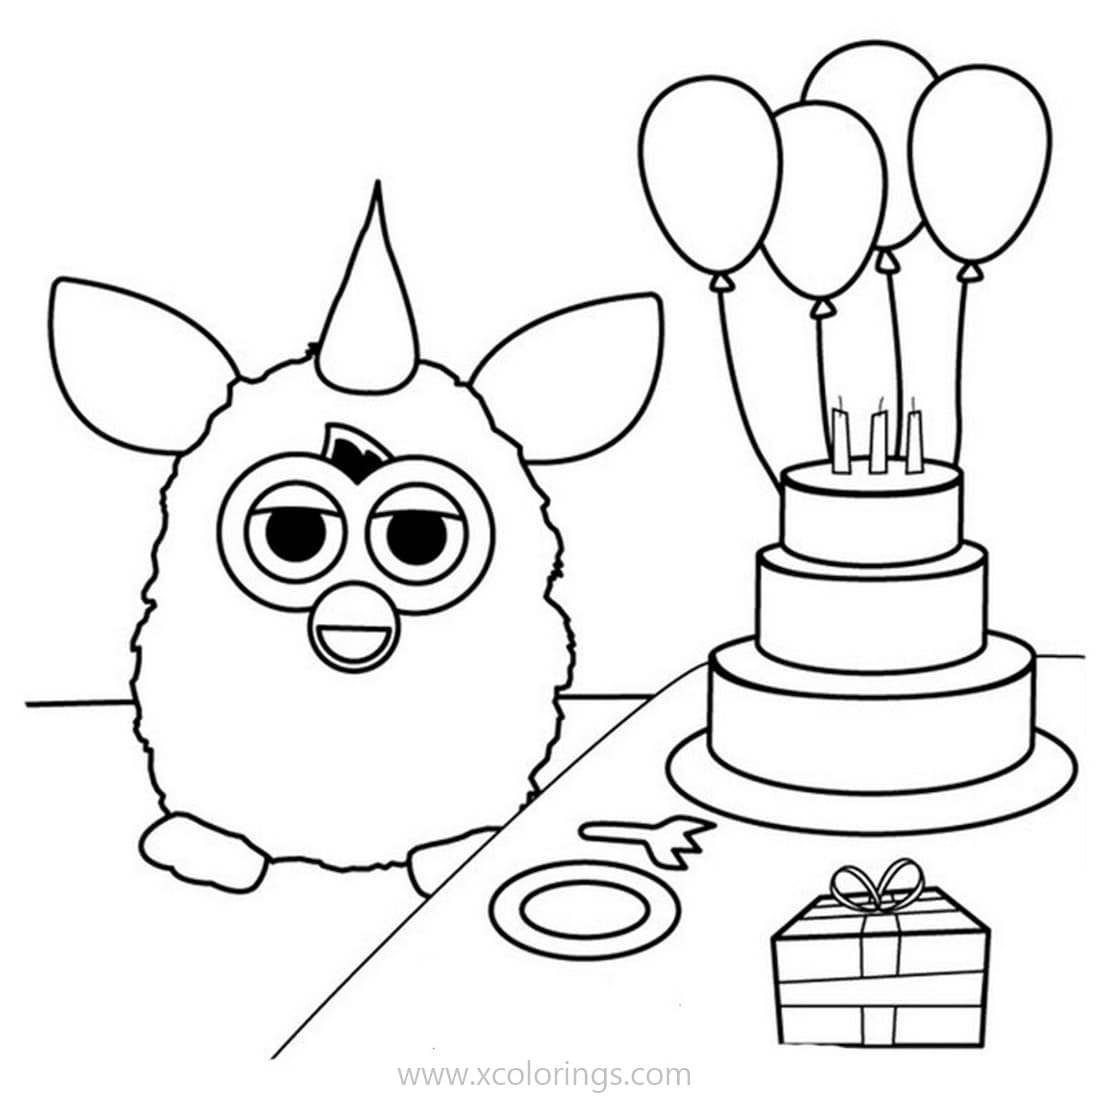 Free Happy Birthday Furby Coloring Pages printable